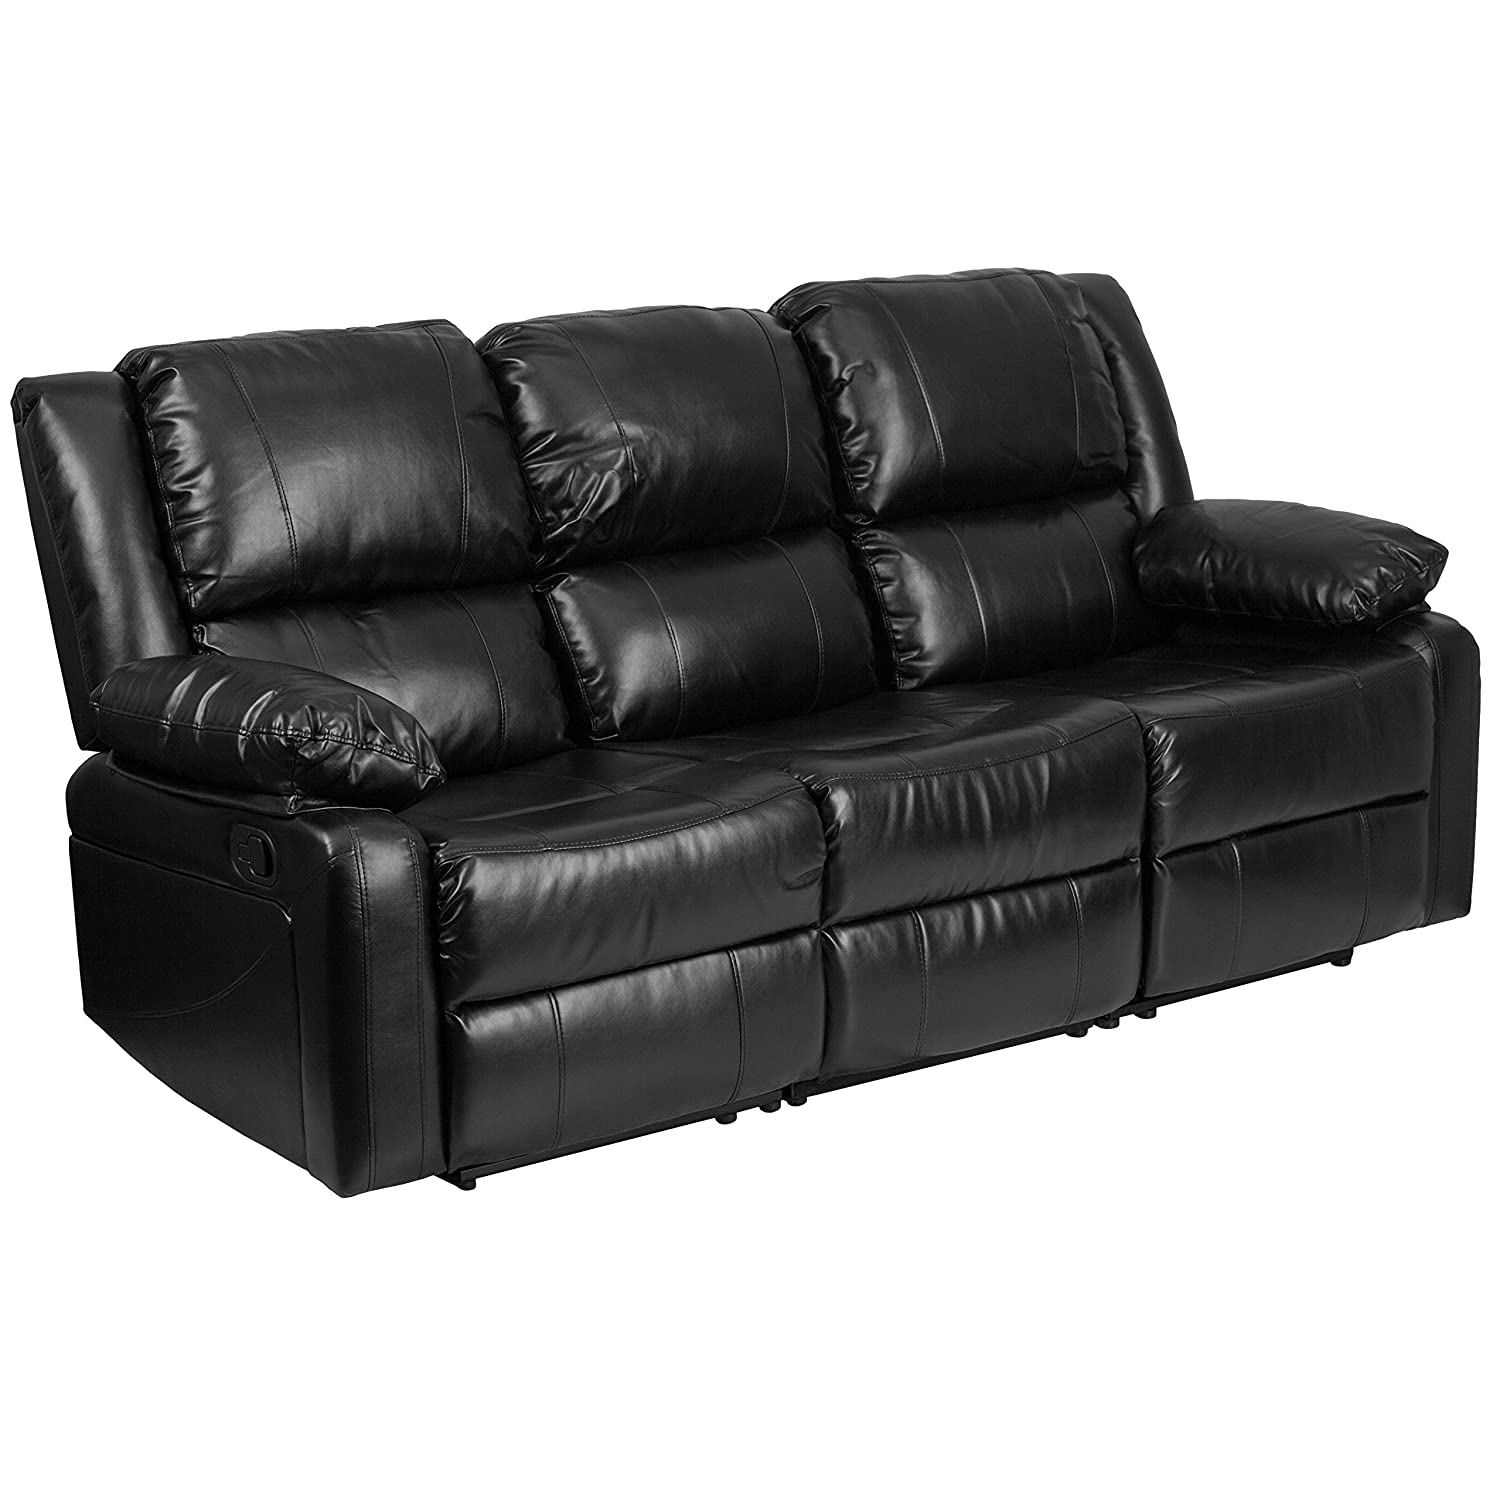 Lovely Black Leather Couch Part - 5: Amazon.com: Flash Furniture Harmony Series Black Leather Sofa With Two  Built-In Recliners: Kitchen U0026 Dining